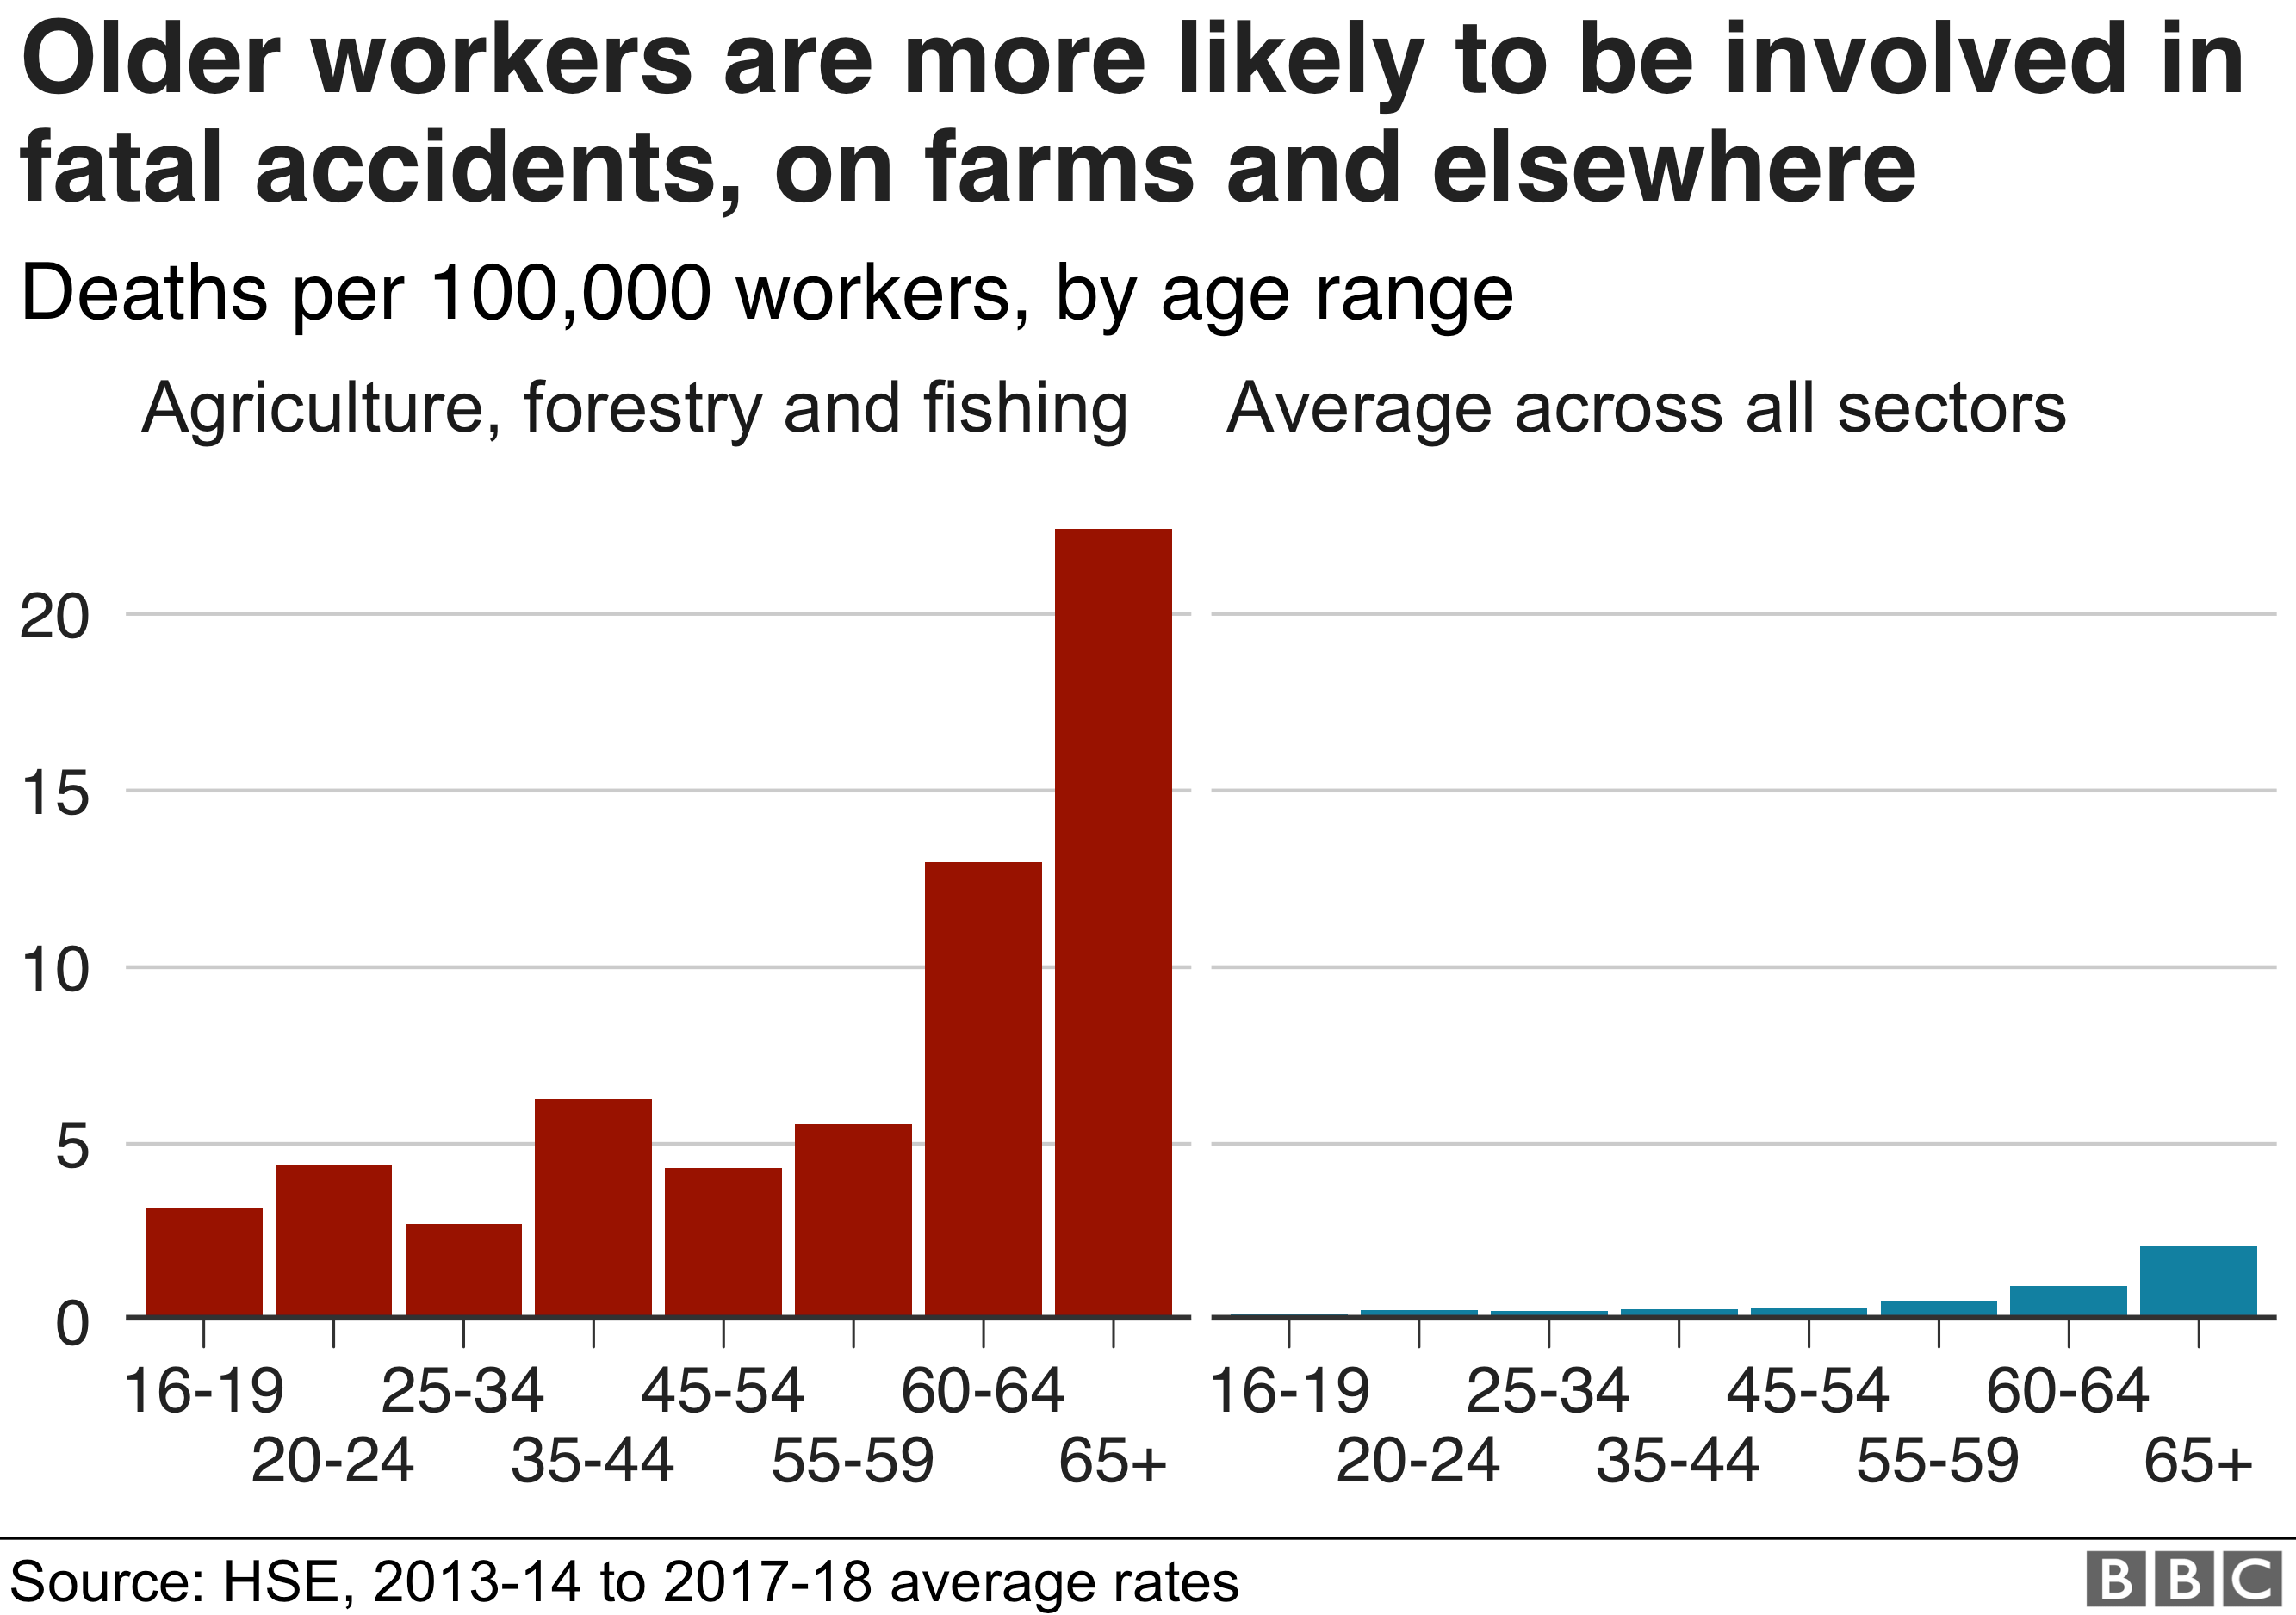 Chart showing how older workers are more likely to be involved in fatal accidents, on farms and across all sectors